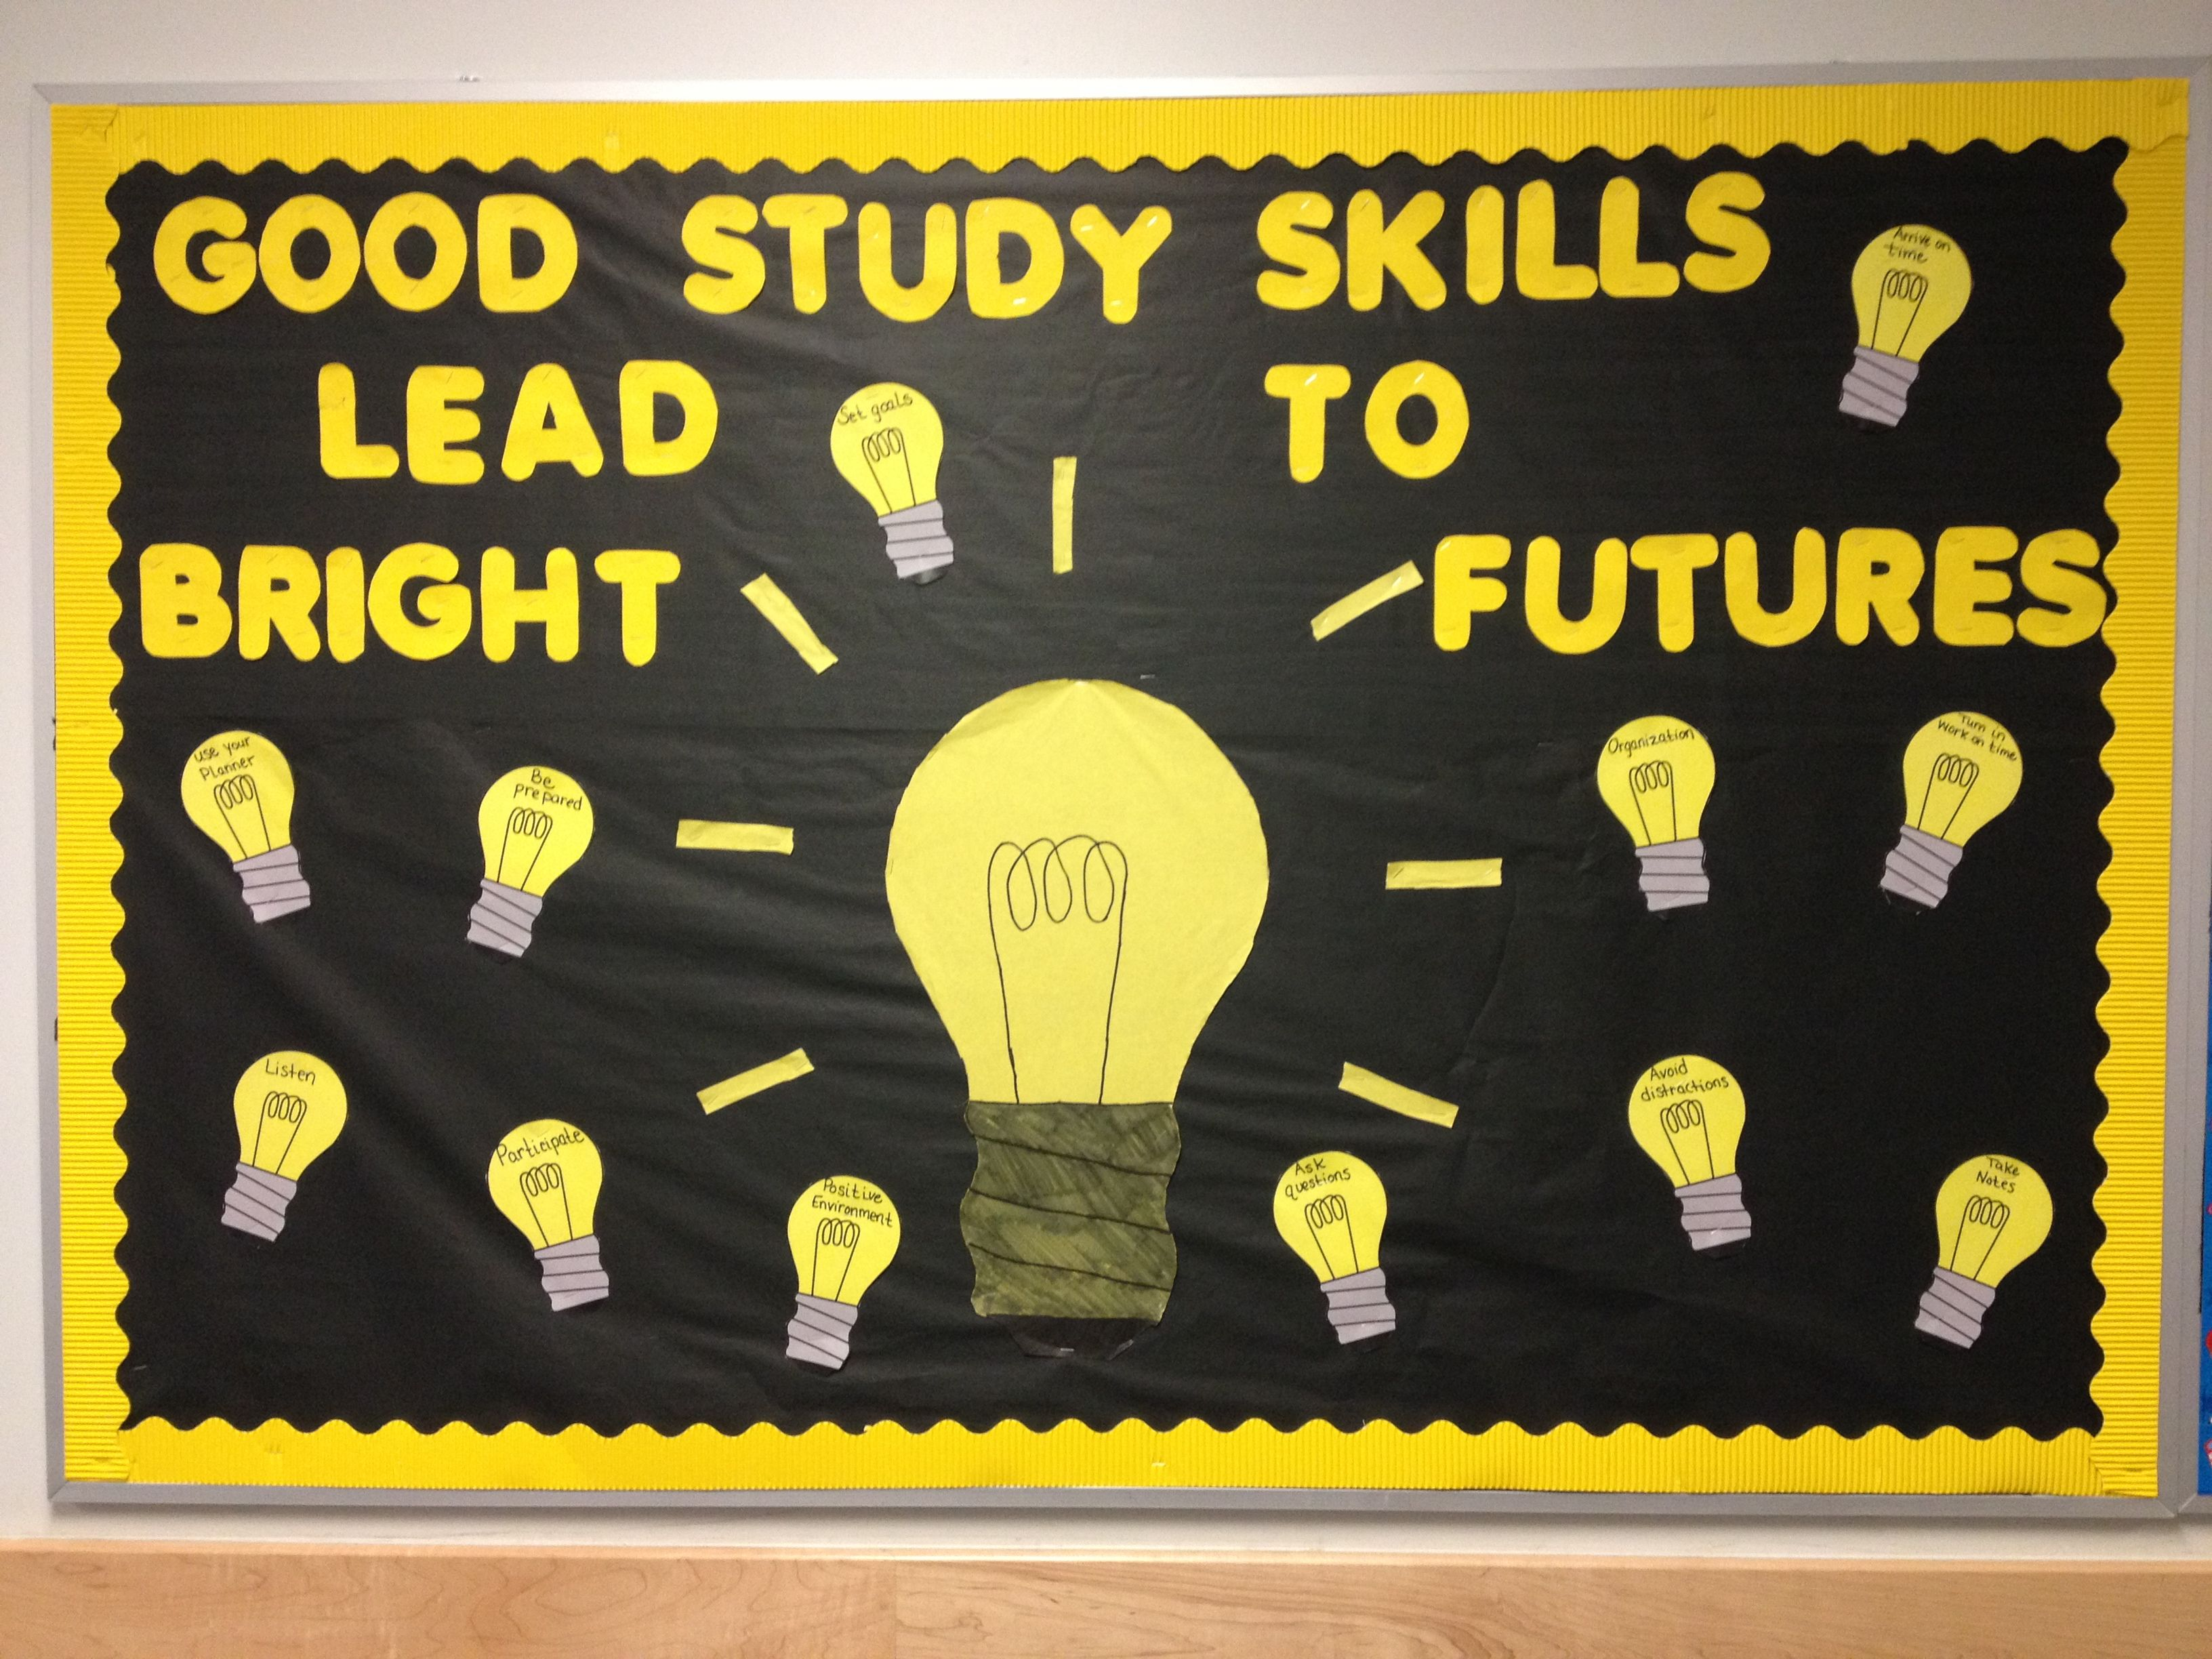 Study Skills Bulletin Board Different Study Skills Are Written Onto The Small Light Bulbs